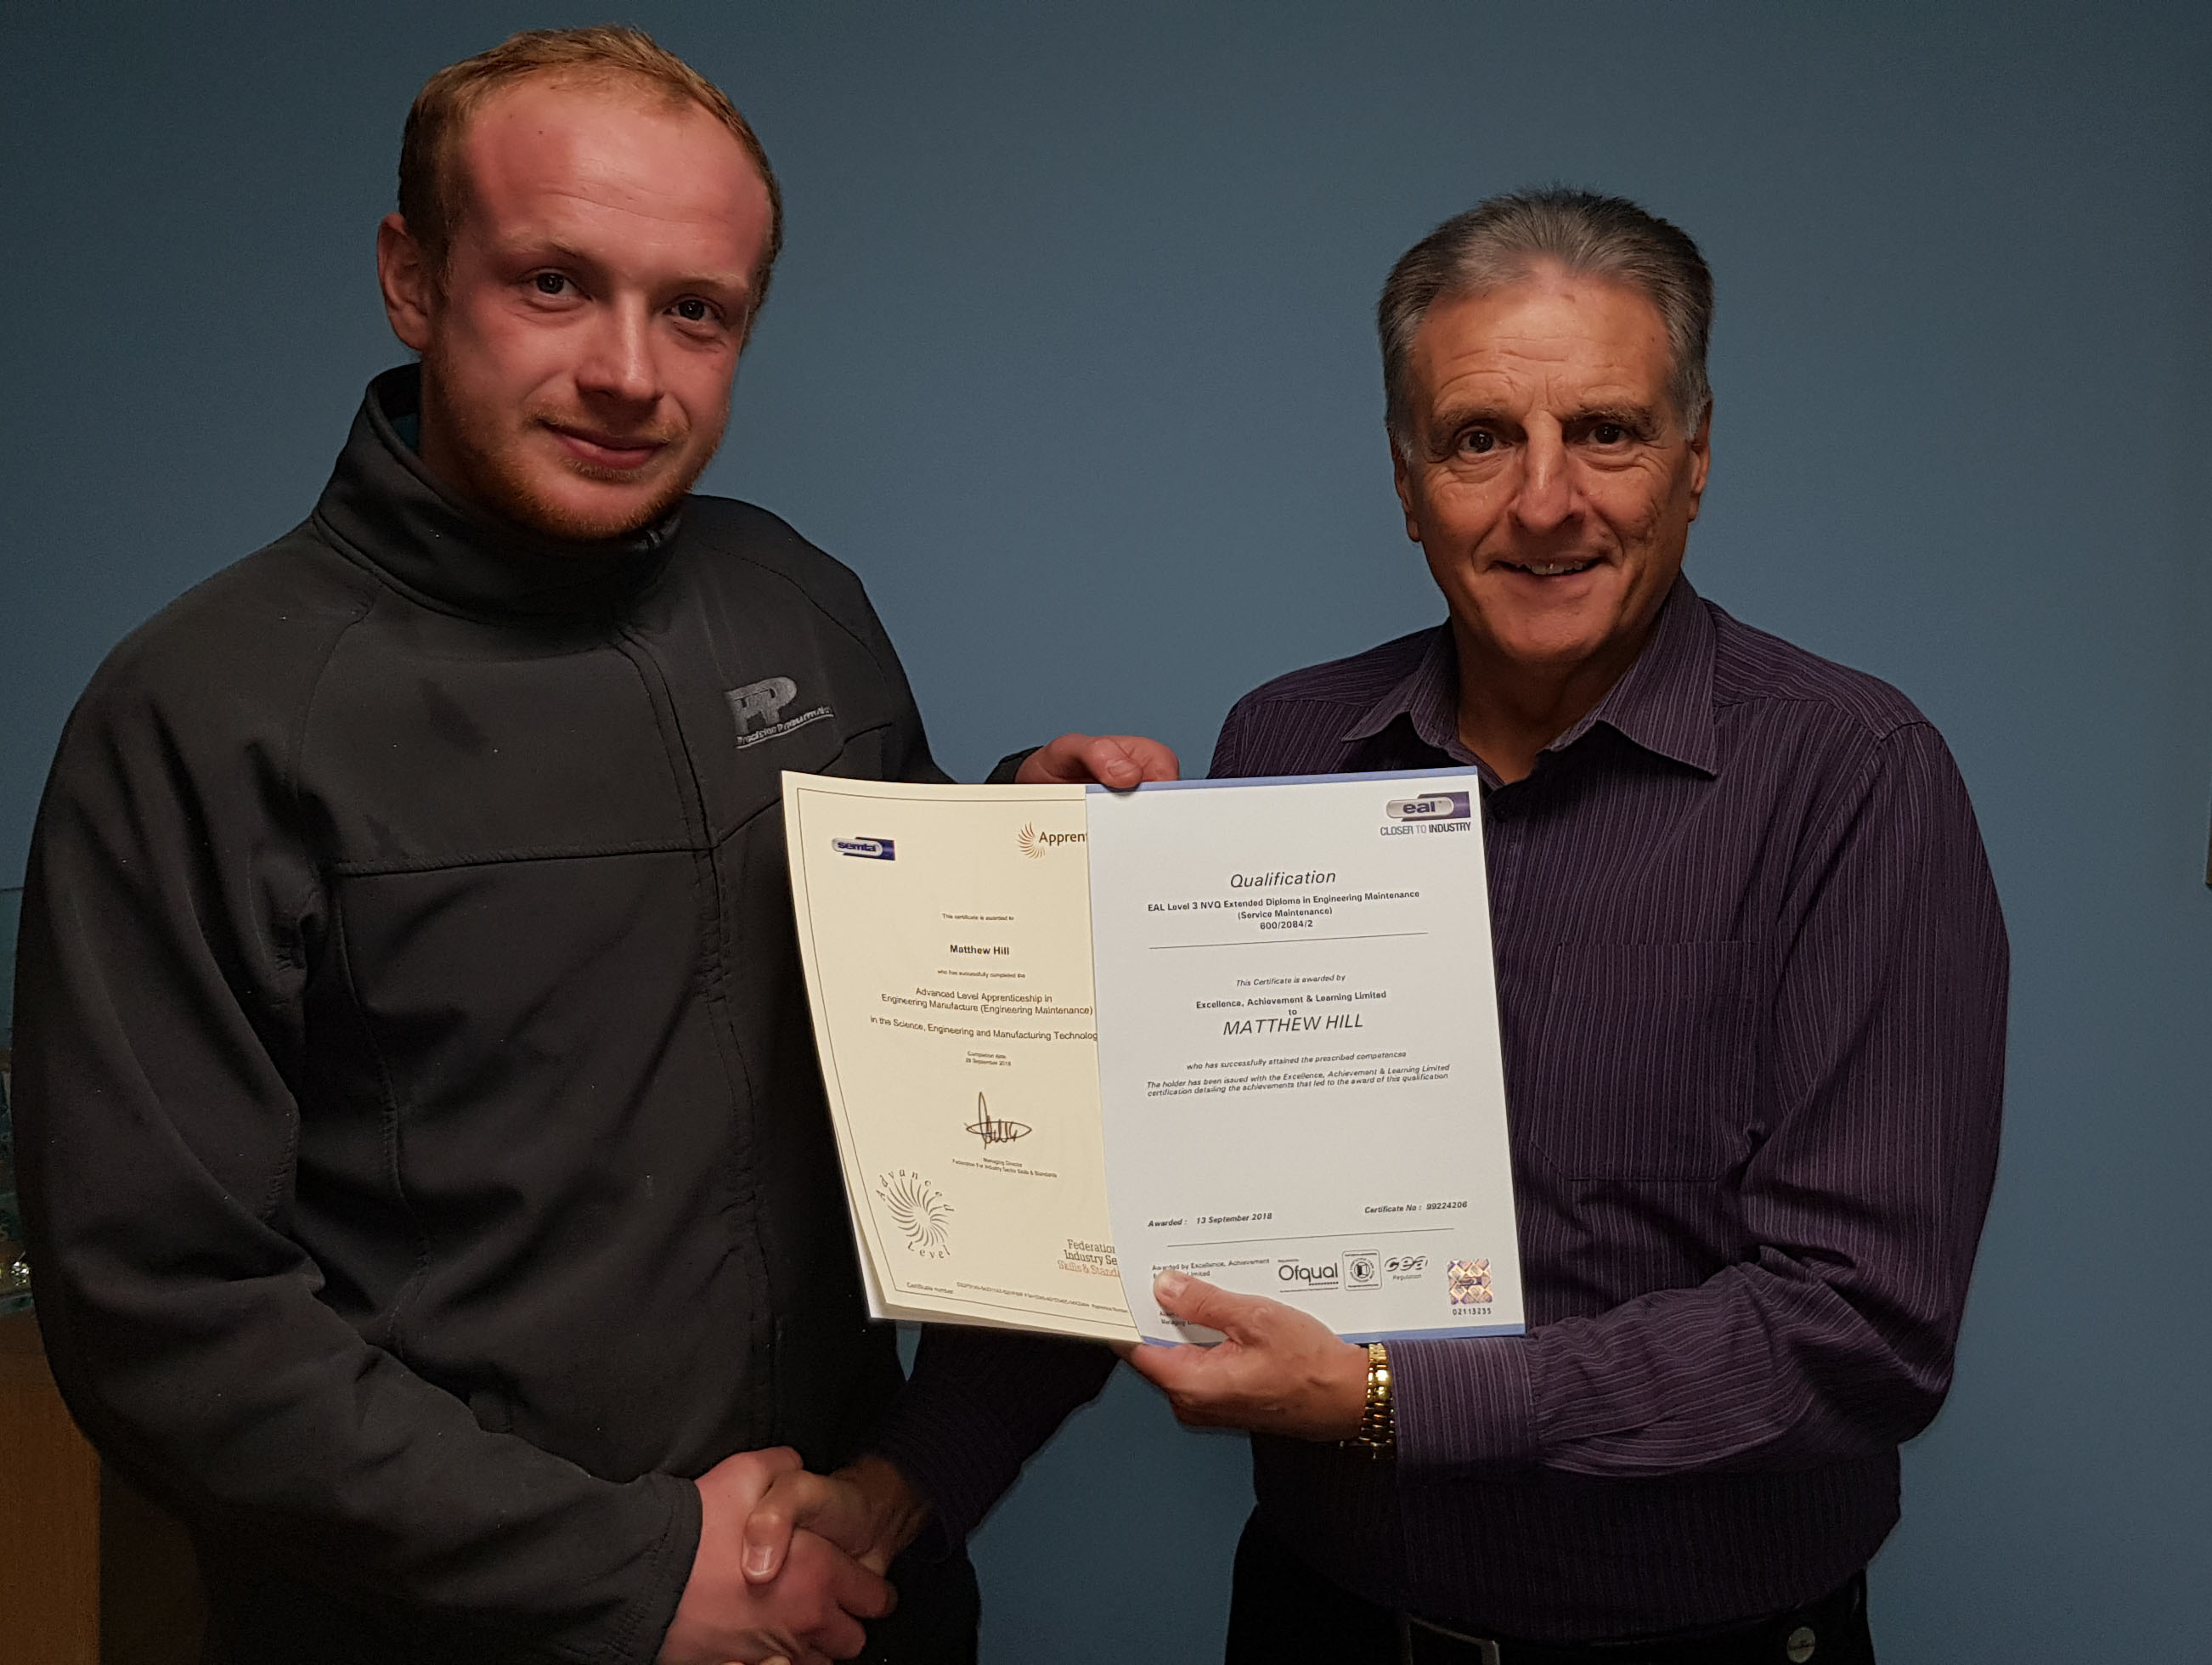 Matthew Hill receives his certificates from Managing Director Phil Hood